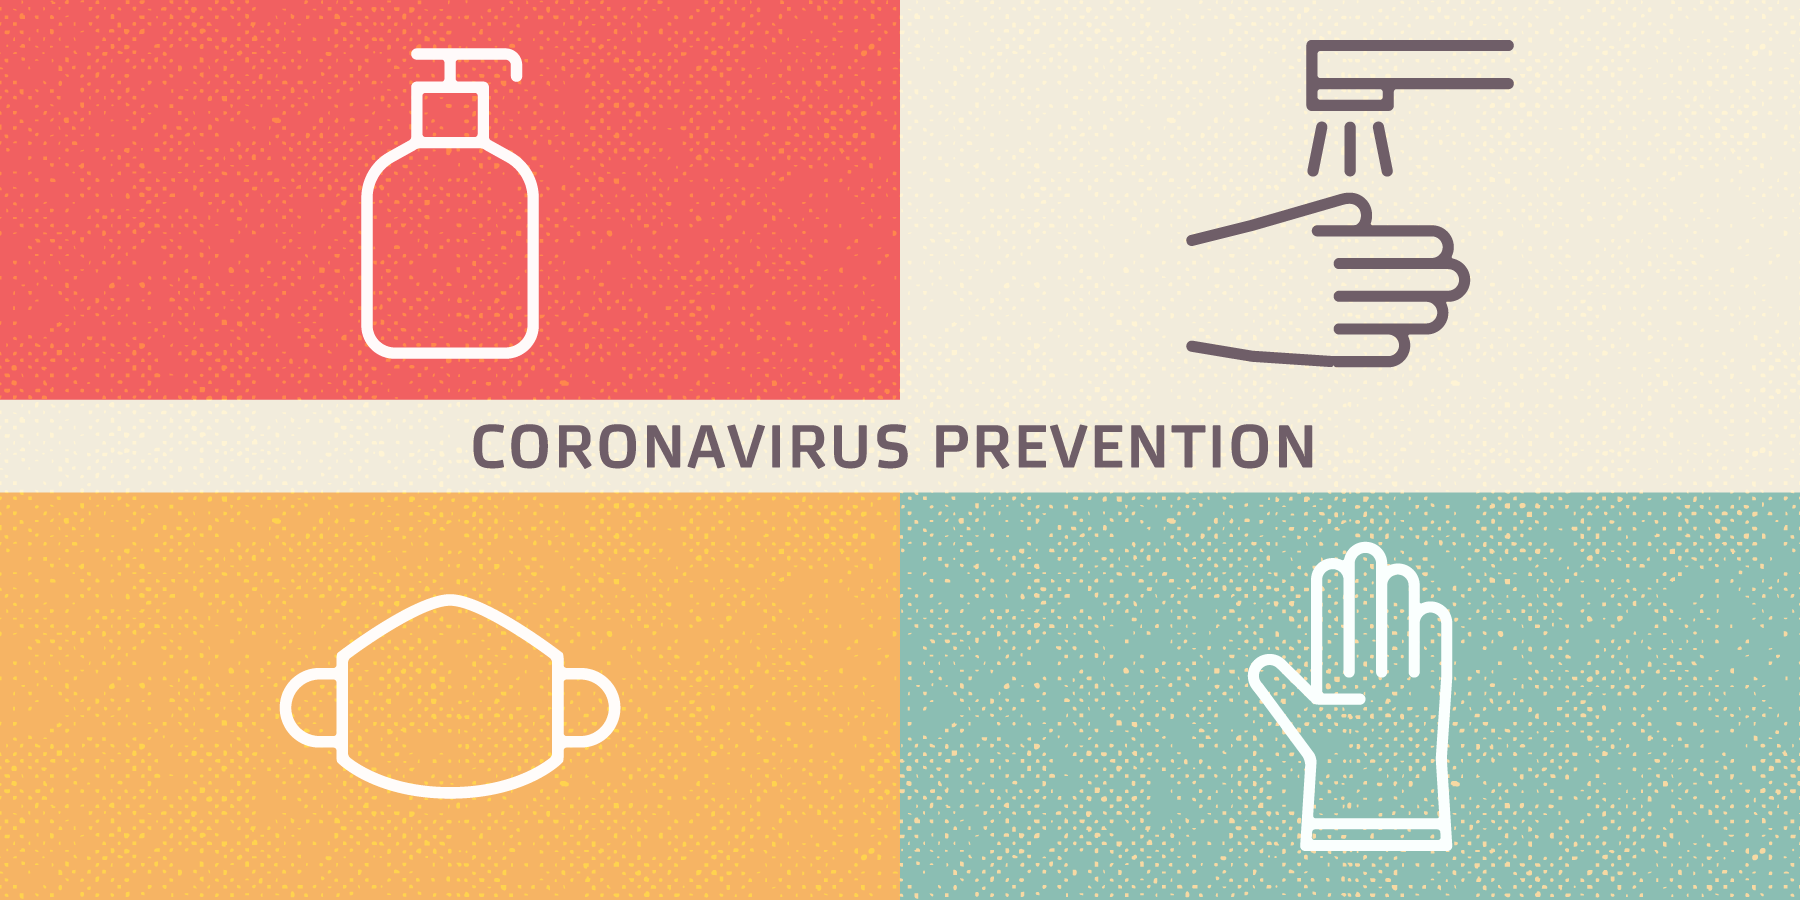 mar20-coronavirus-safety-tips-1800x900